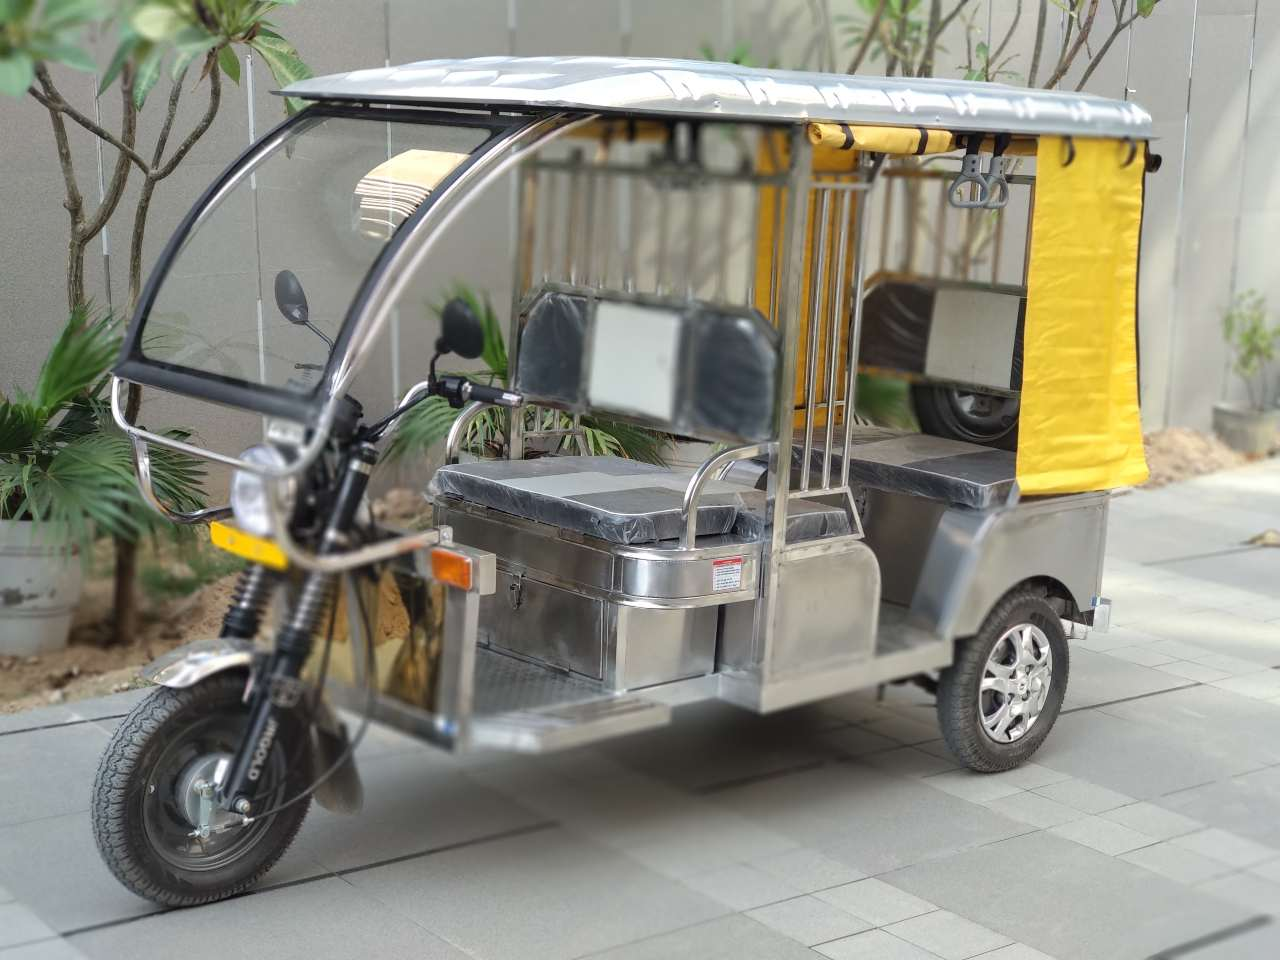 An order of 100 stainless steel has been placed for these rickshaws so far. (Image: Jindal Stainless)